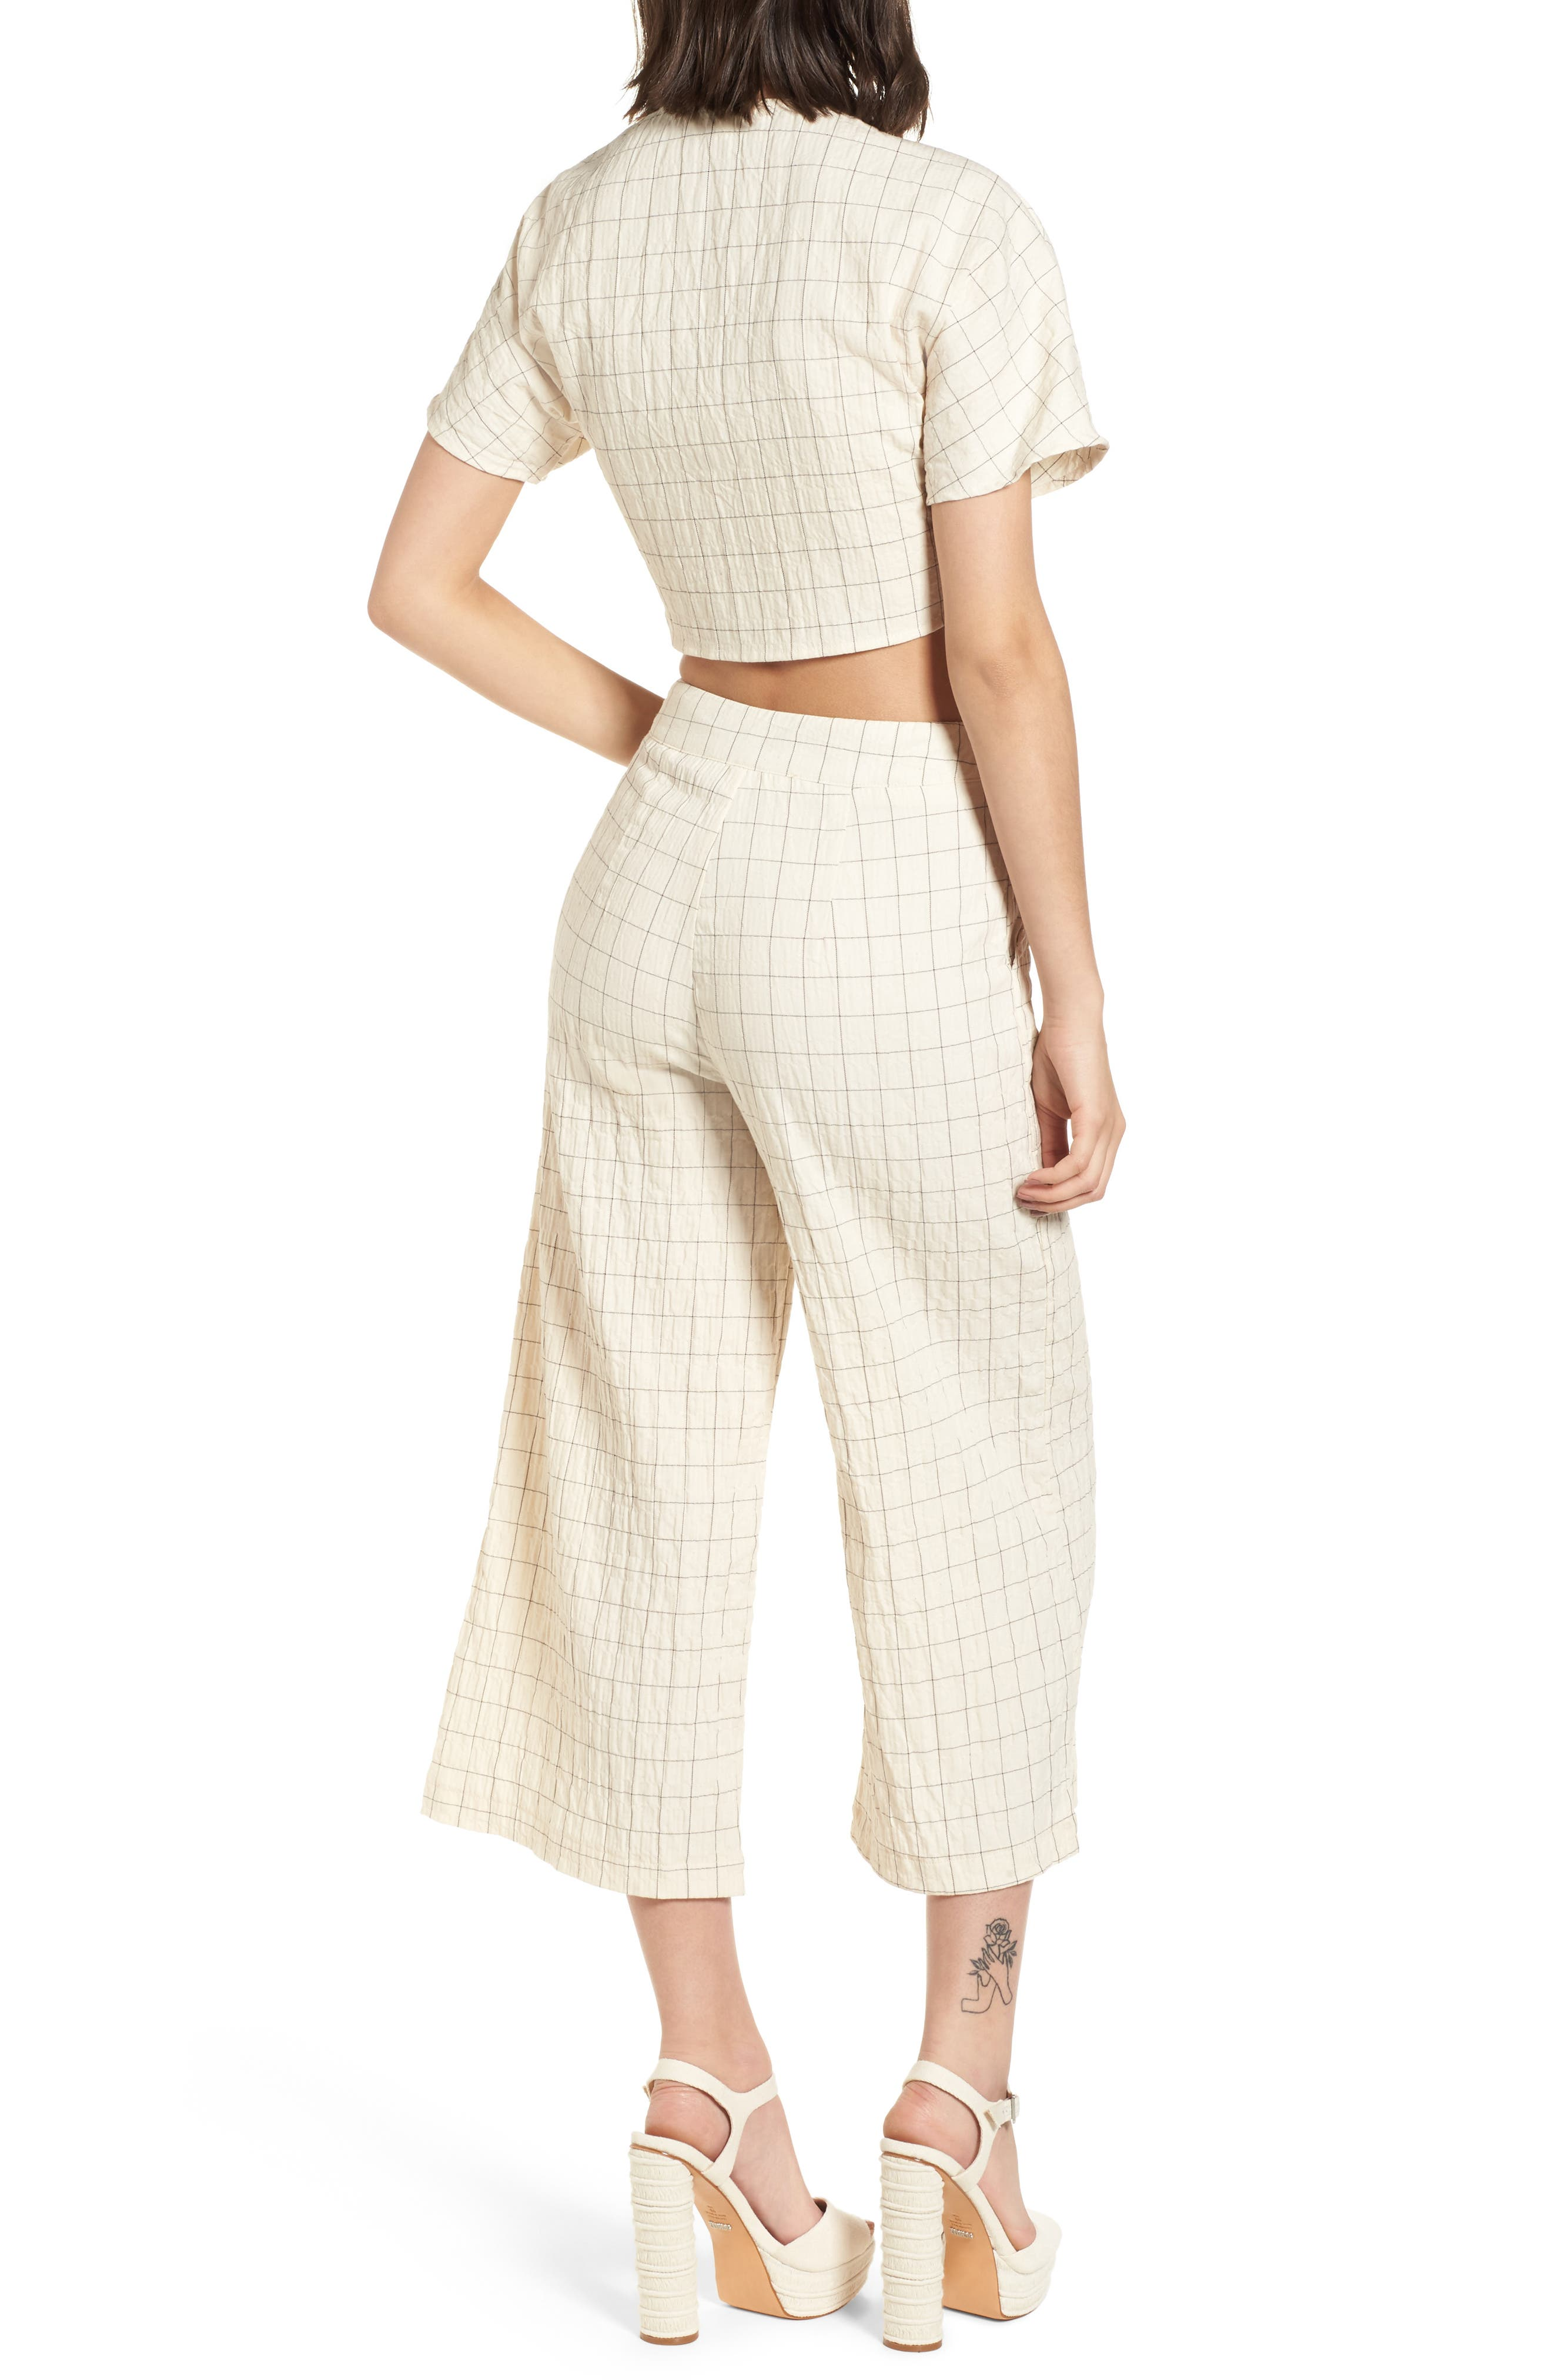 Plaid Culottes,                             Alternate thumbnail 9, color,                             250